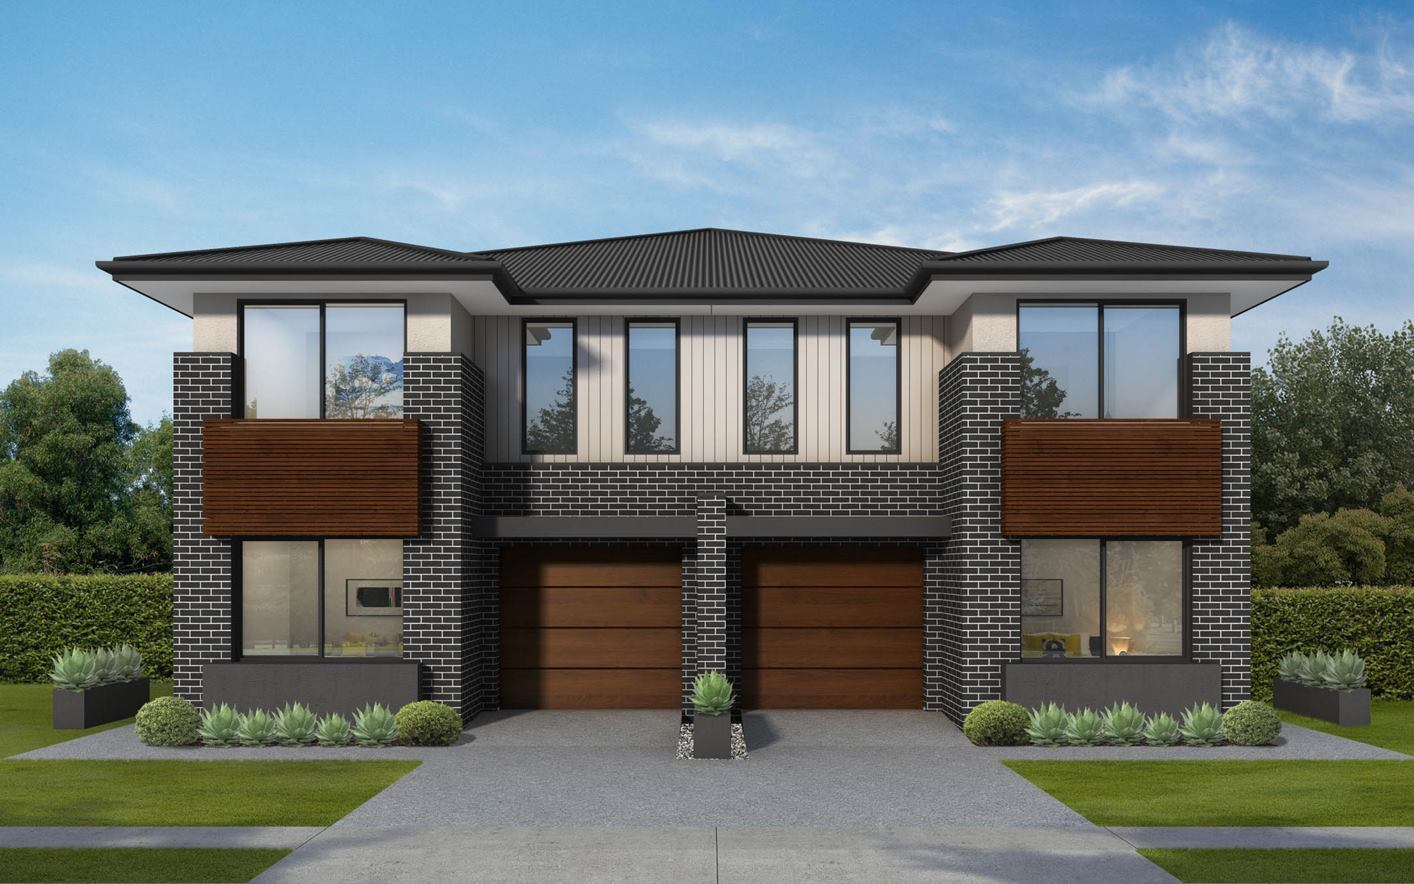 Sarina Duplex Home Design with vogue facade